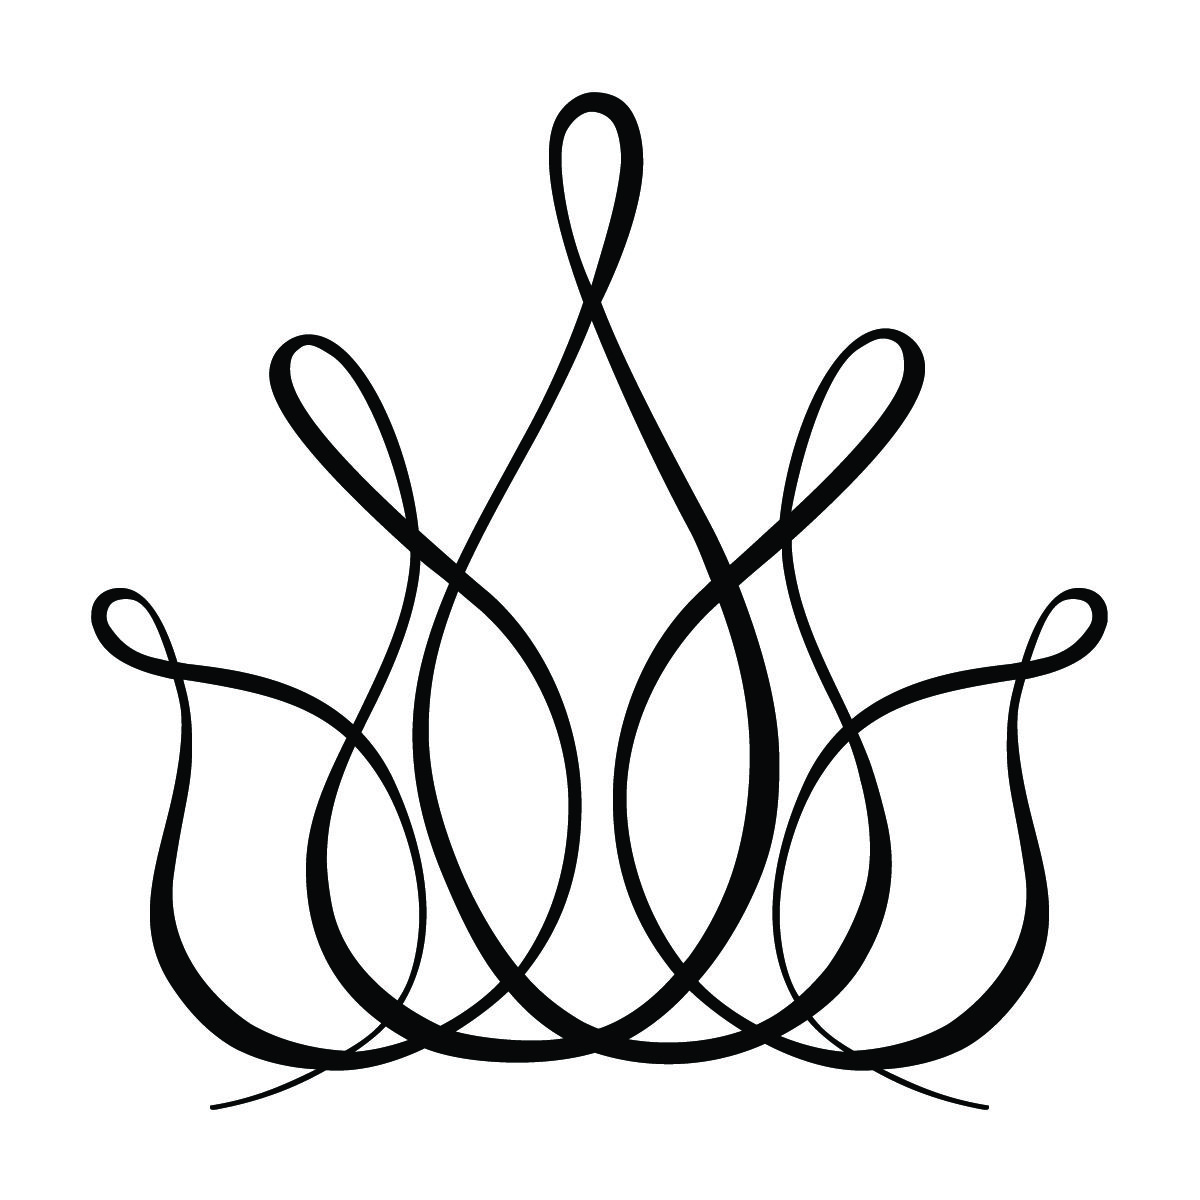 Stylized Crown Graphic